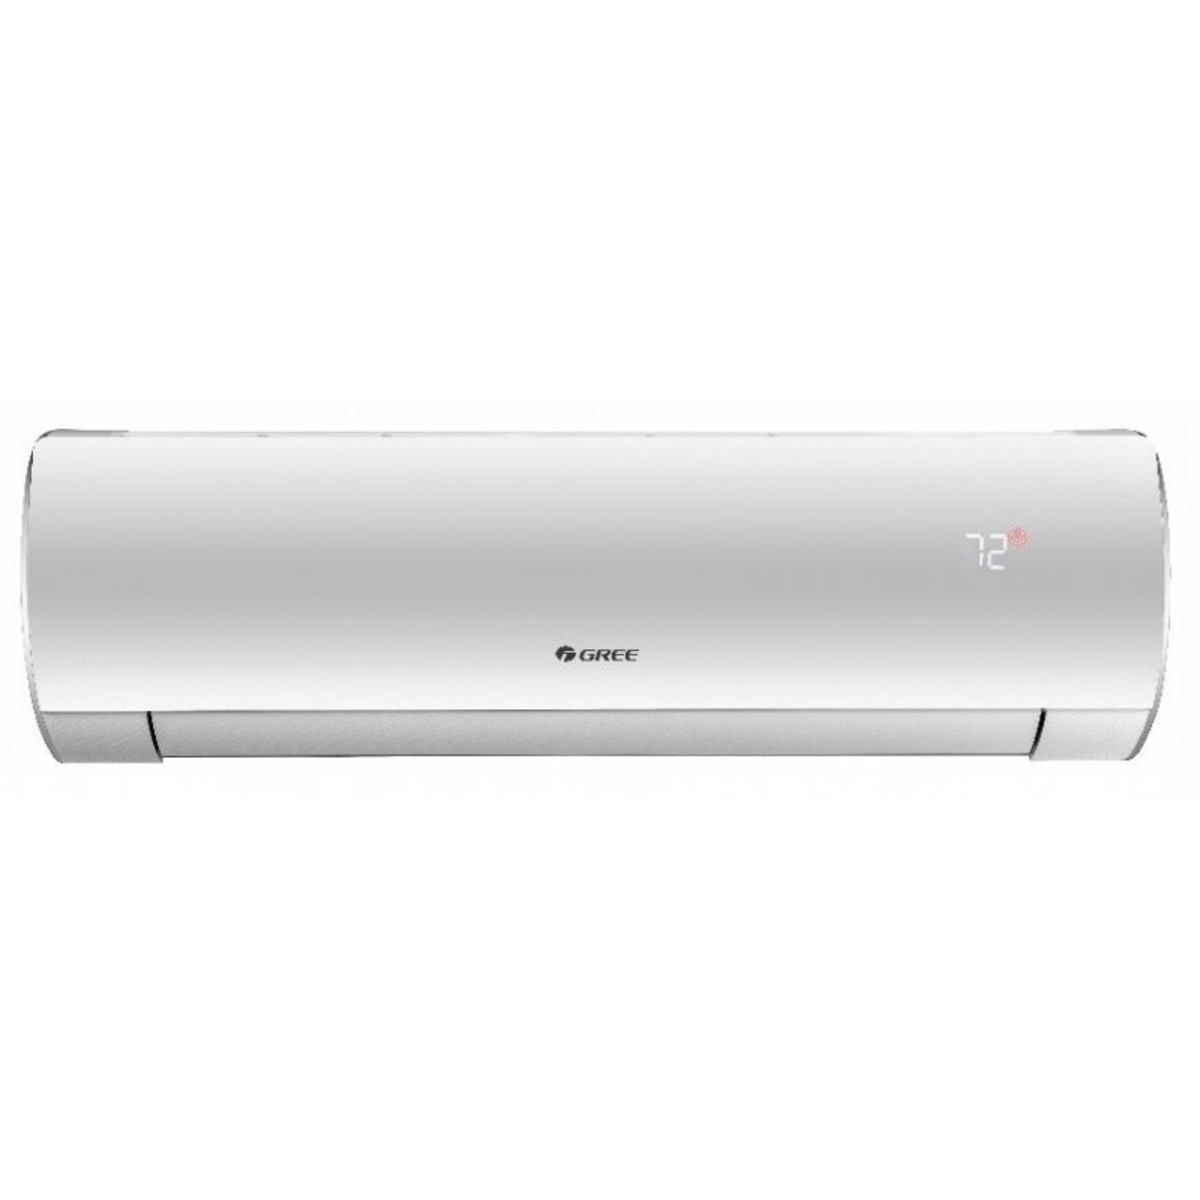 GSAF909A 1HP Split Type Air Conditioner(Cooling only)  Hong Kong Warranty Genuine Products